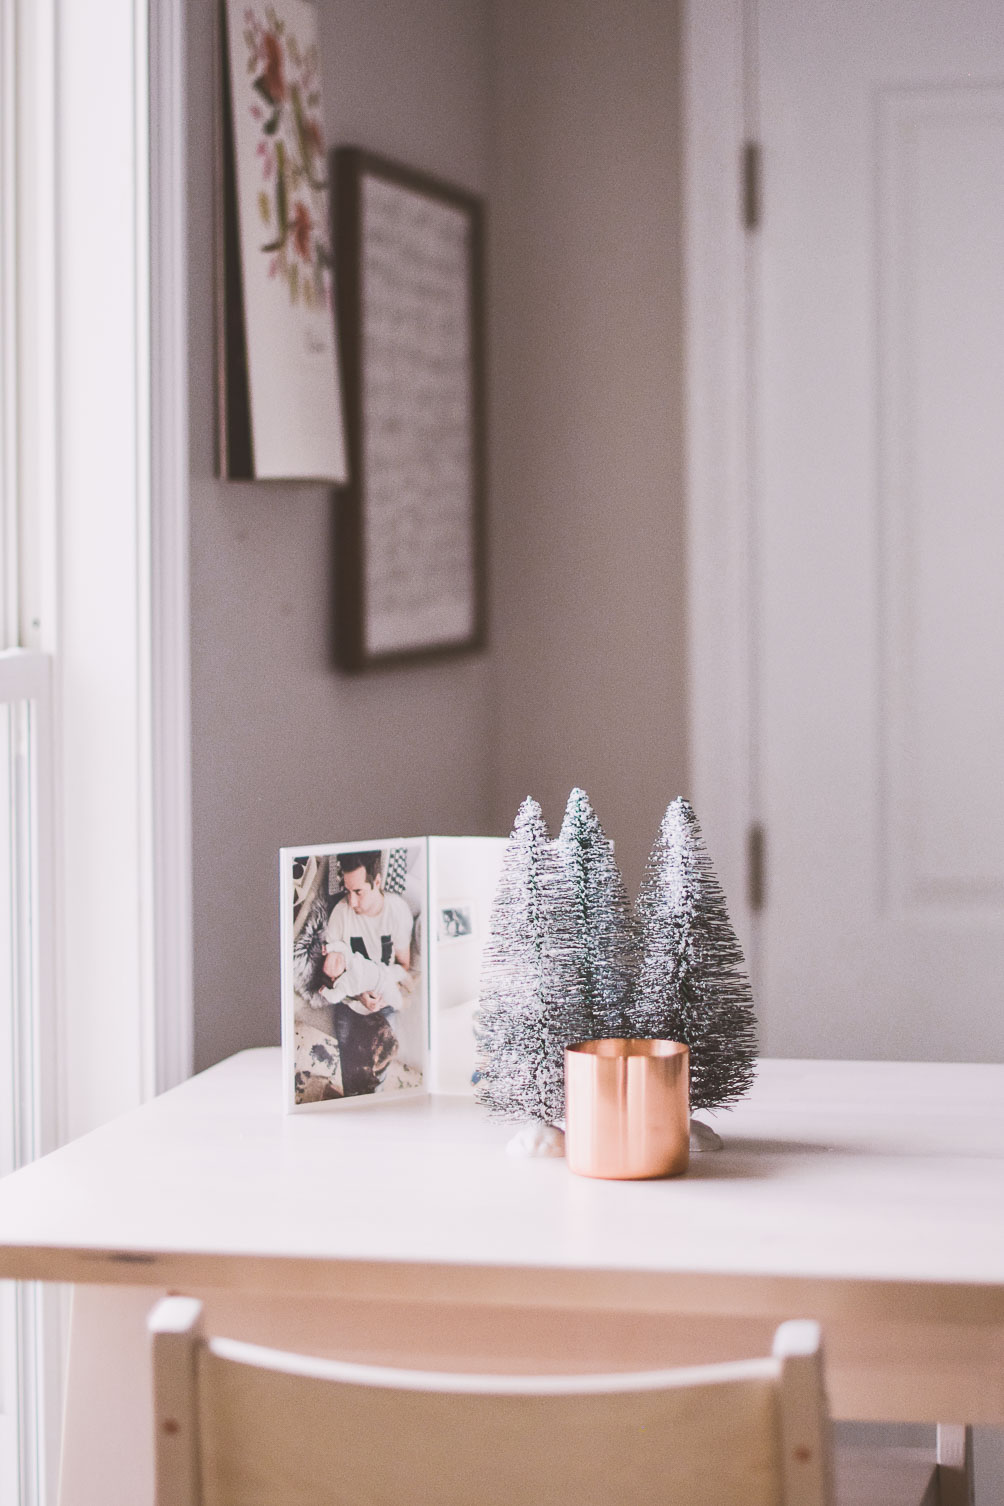 sharing tips for easy holiday decorating ideas on a budget in this mid-century modern home